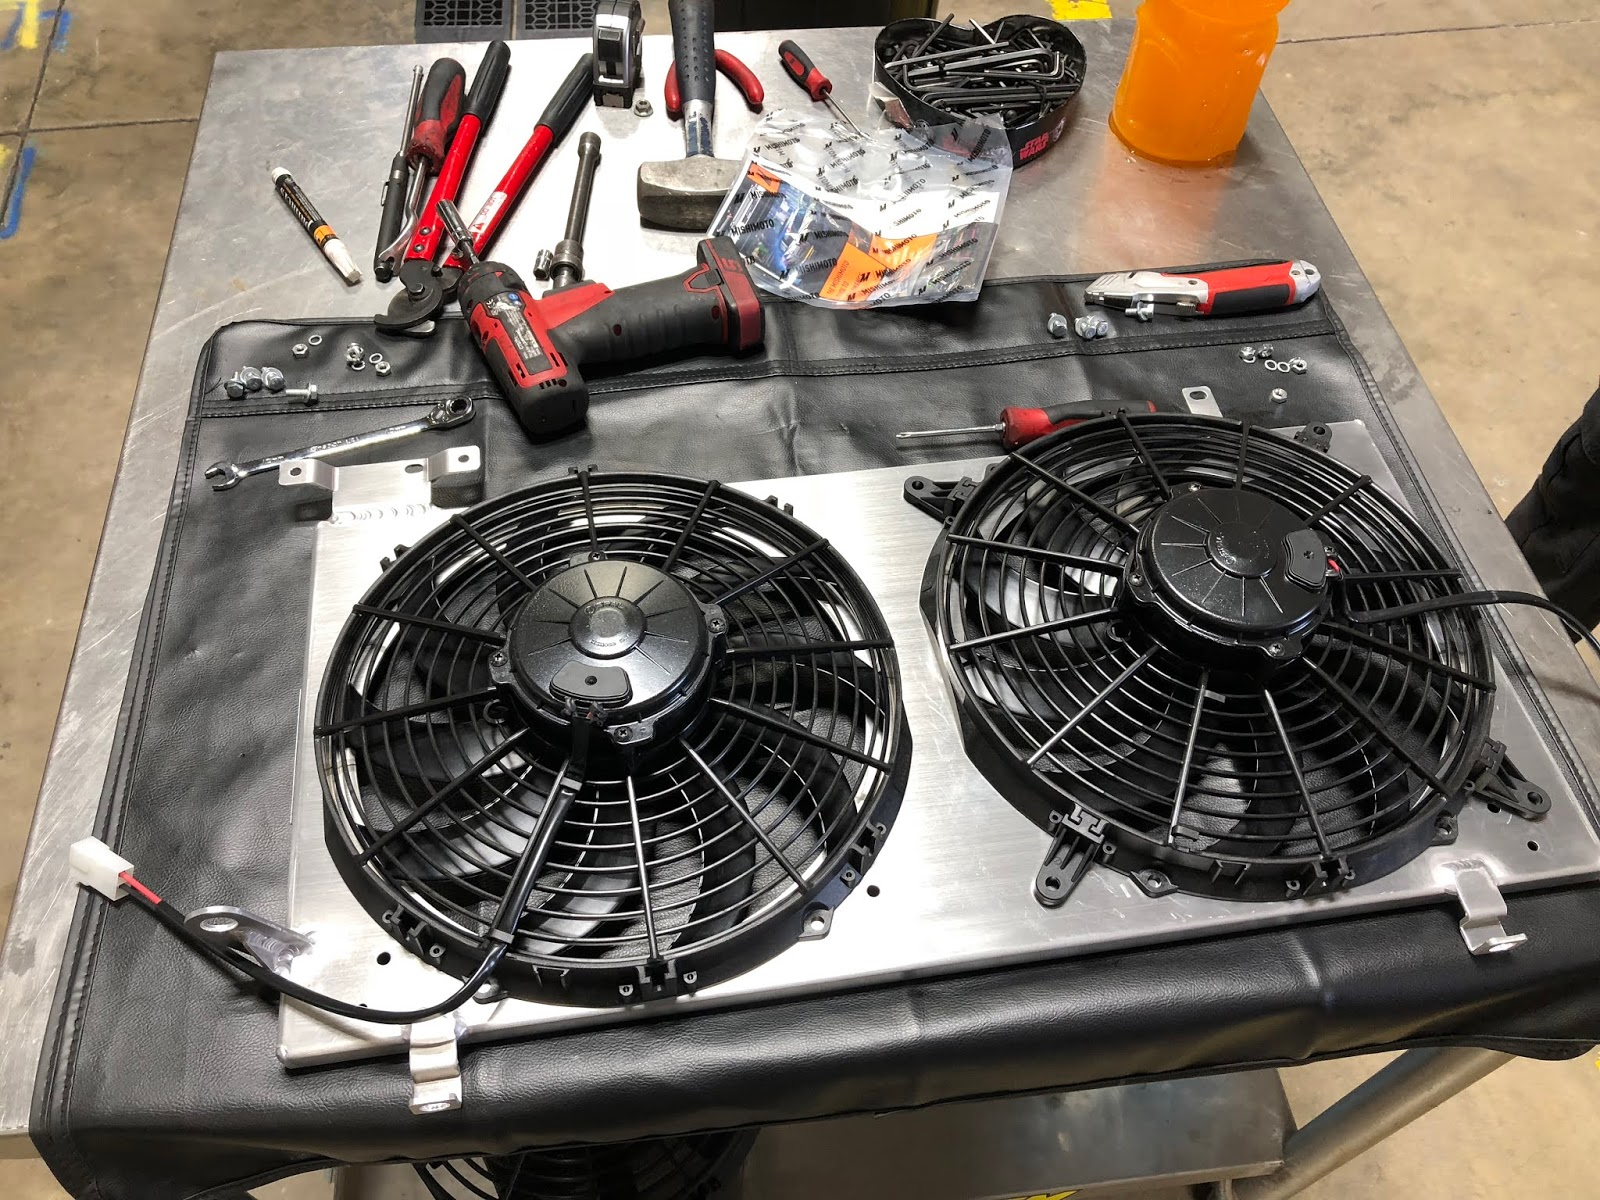 Circuit Motorsports: Flat-Out: Subaru WRX Cooling Mods - Upgraded